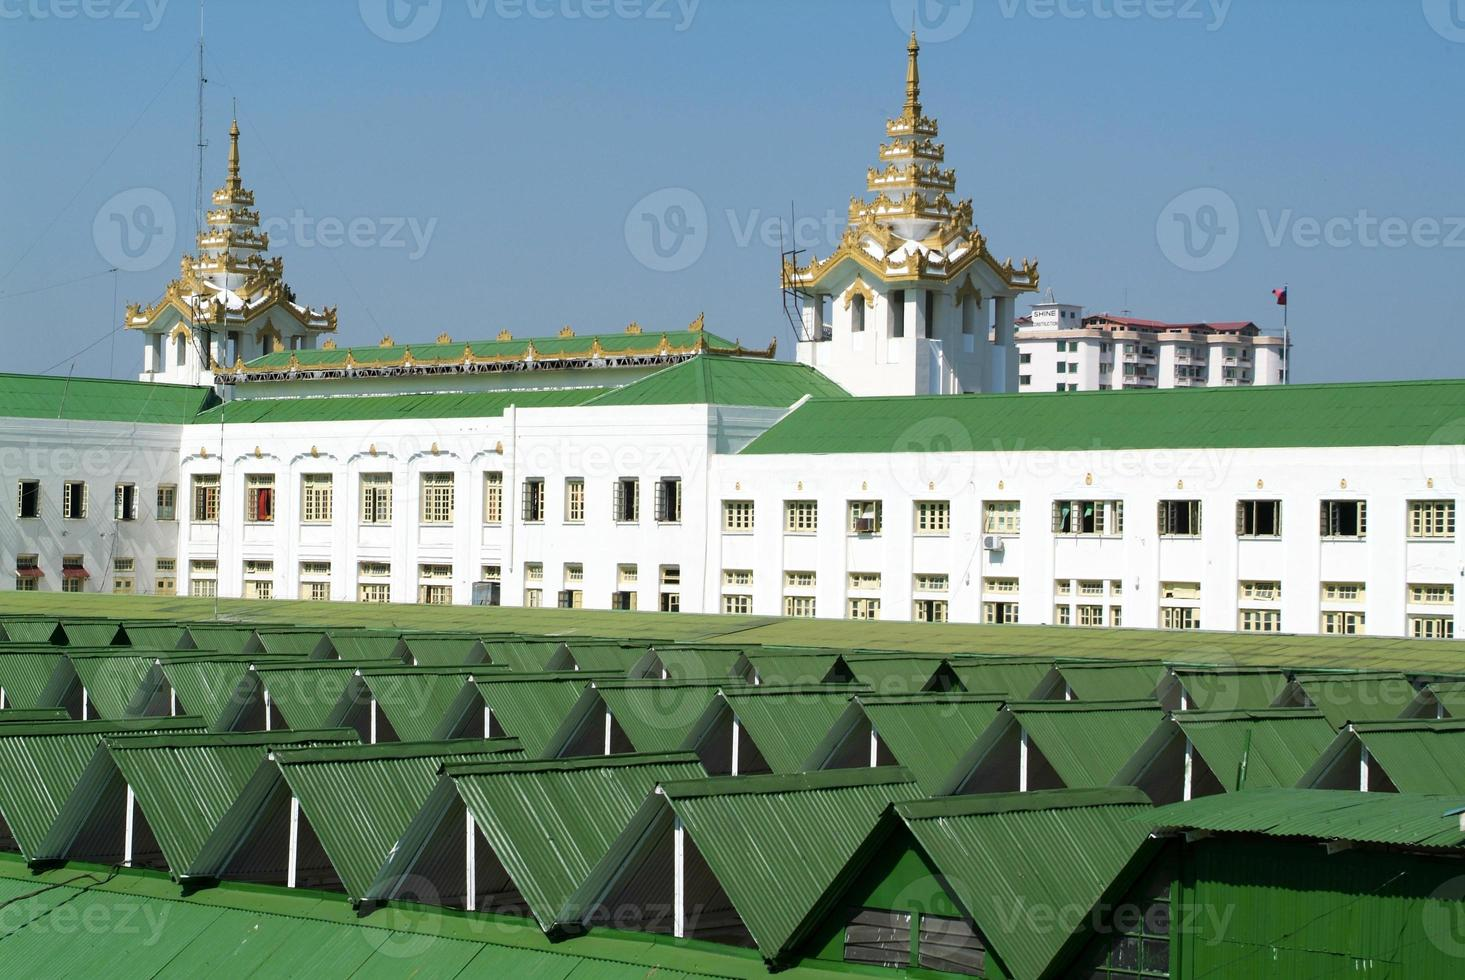 Roof of railway station building in Yangon photo